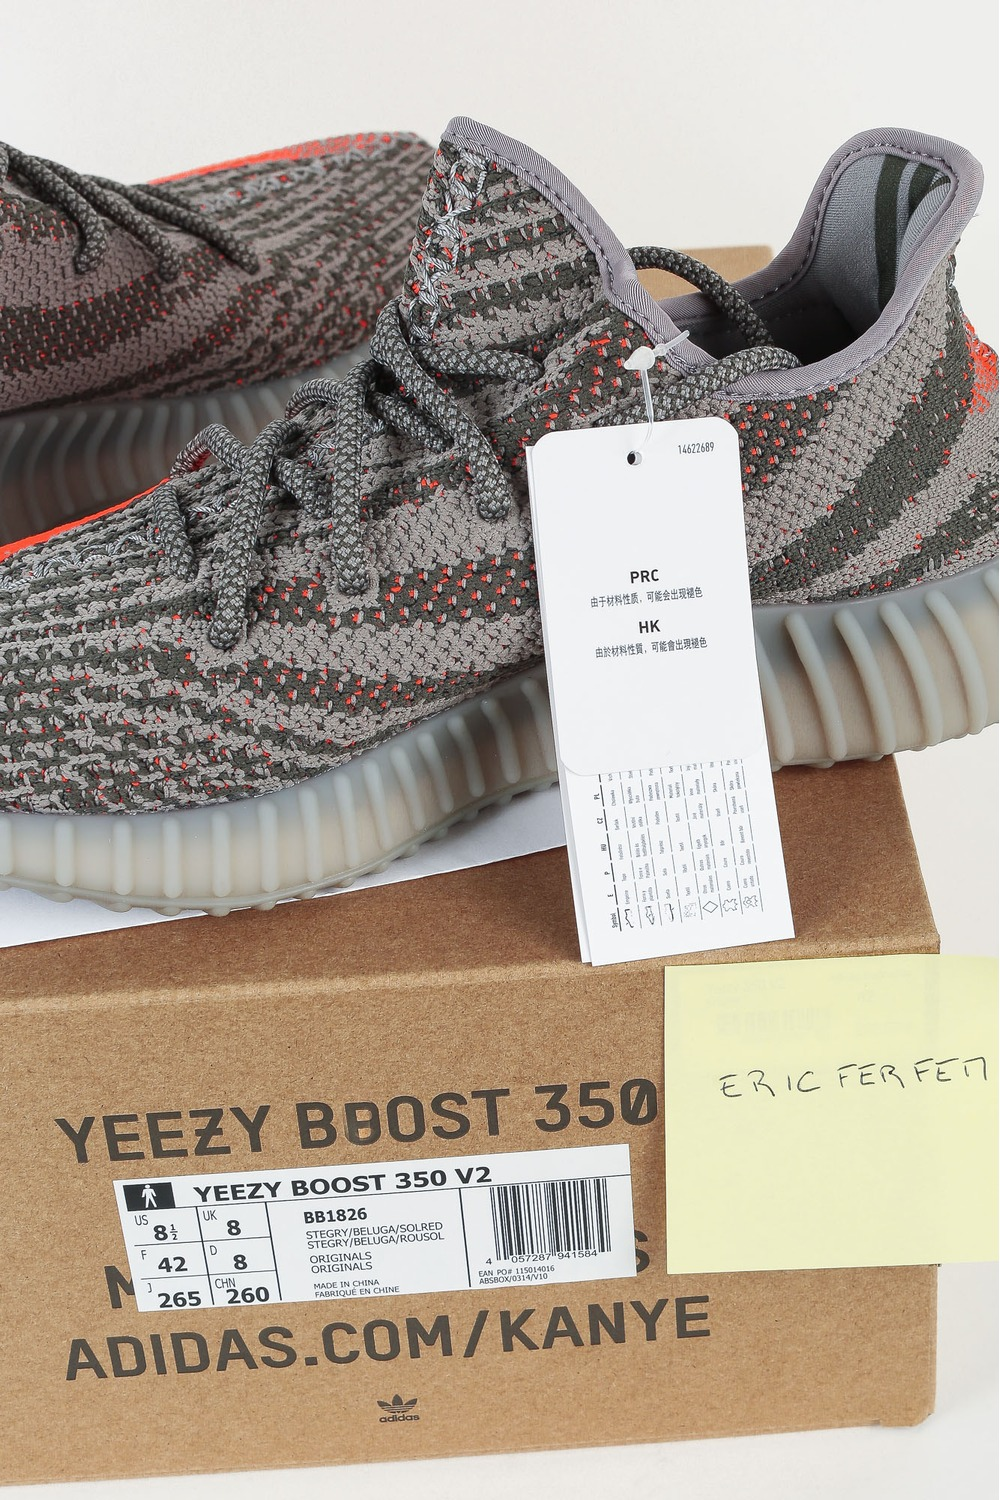 Adidas Yeezy Boost 350 V2 Steel Grey/Beluga/Solar Red